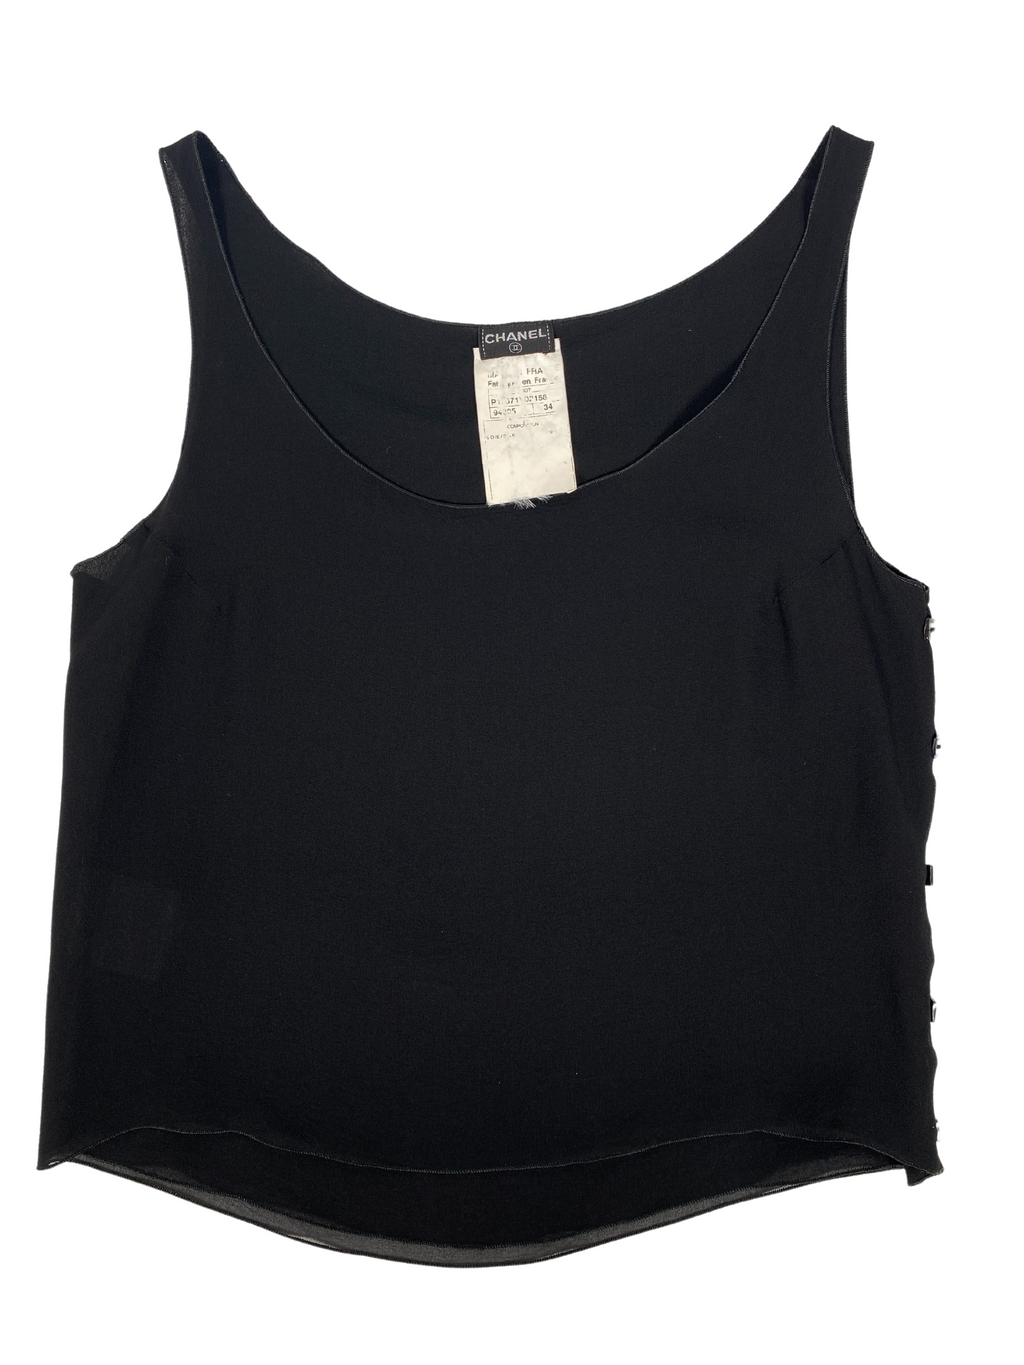 CHANEL - VINTAGE BLACK SILK BUTTONED CROPPED TANK - Sz S